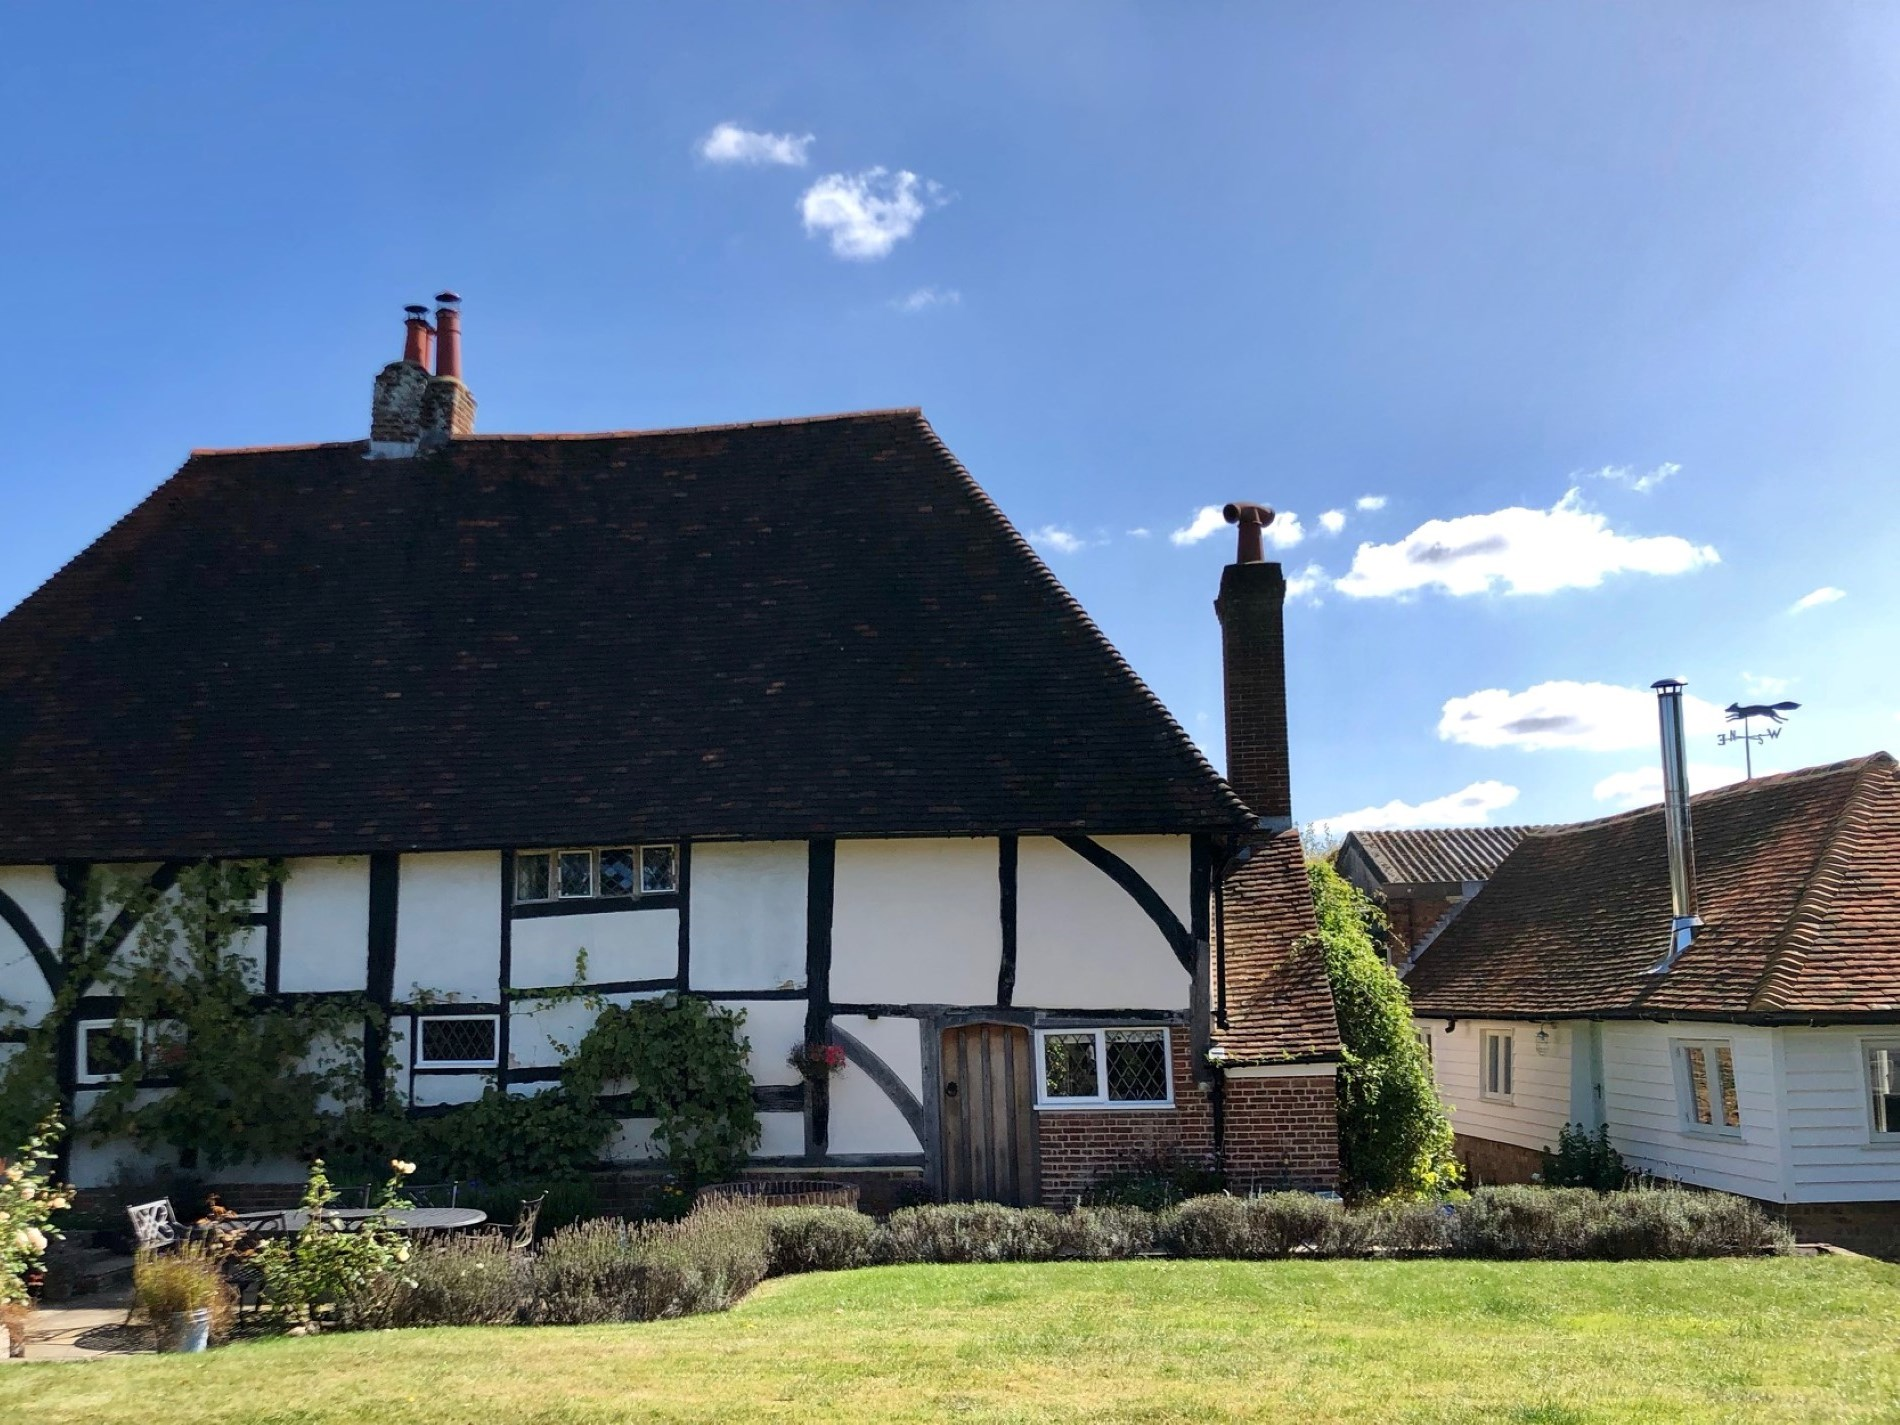 1 Bedroom Cottage in Cranbrook, South of England